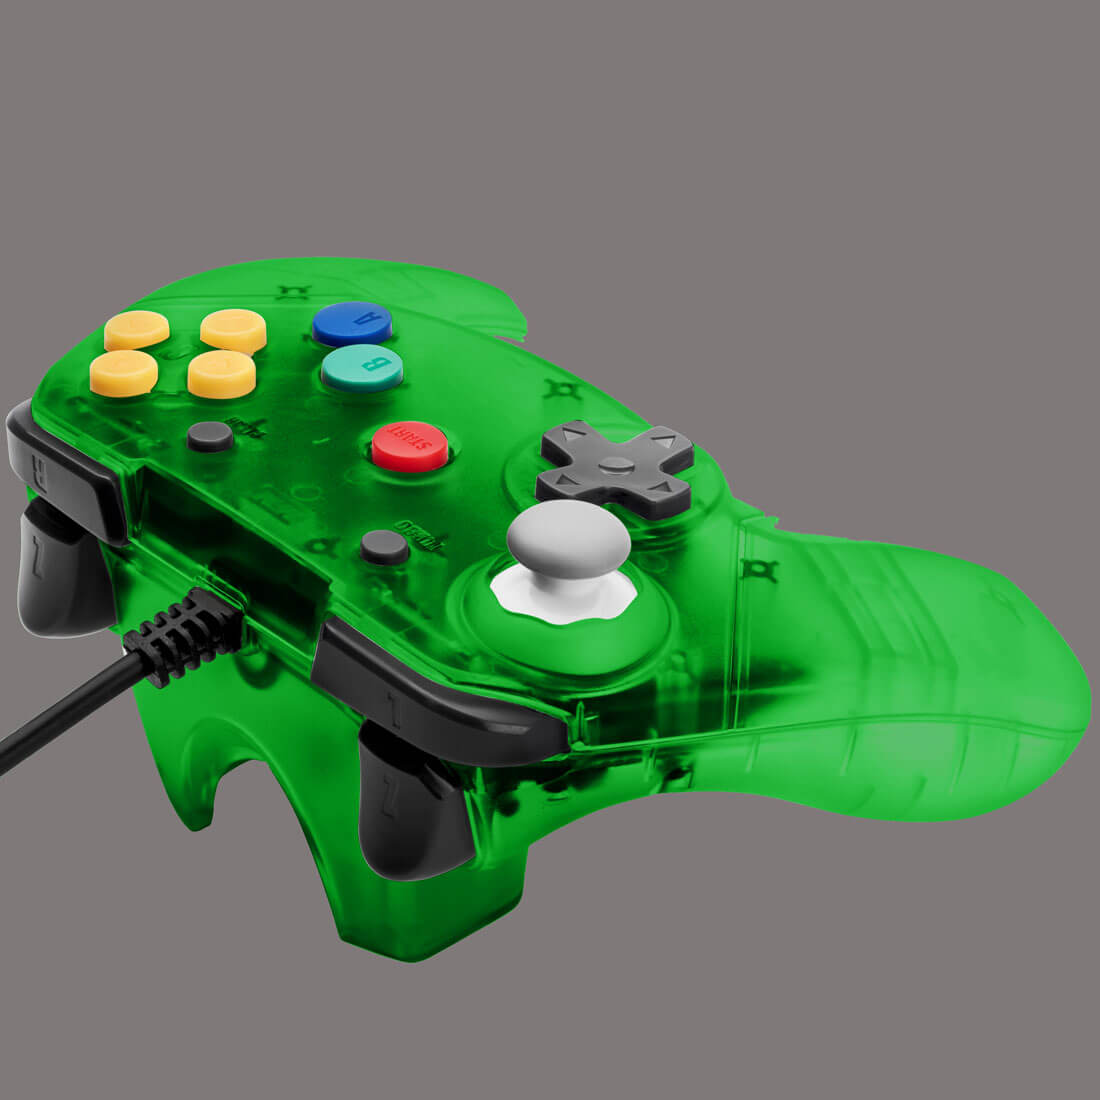 brawler64tc-persp-top-right-green-1100x1100.jpg